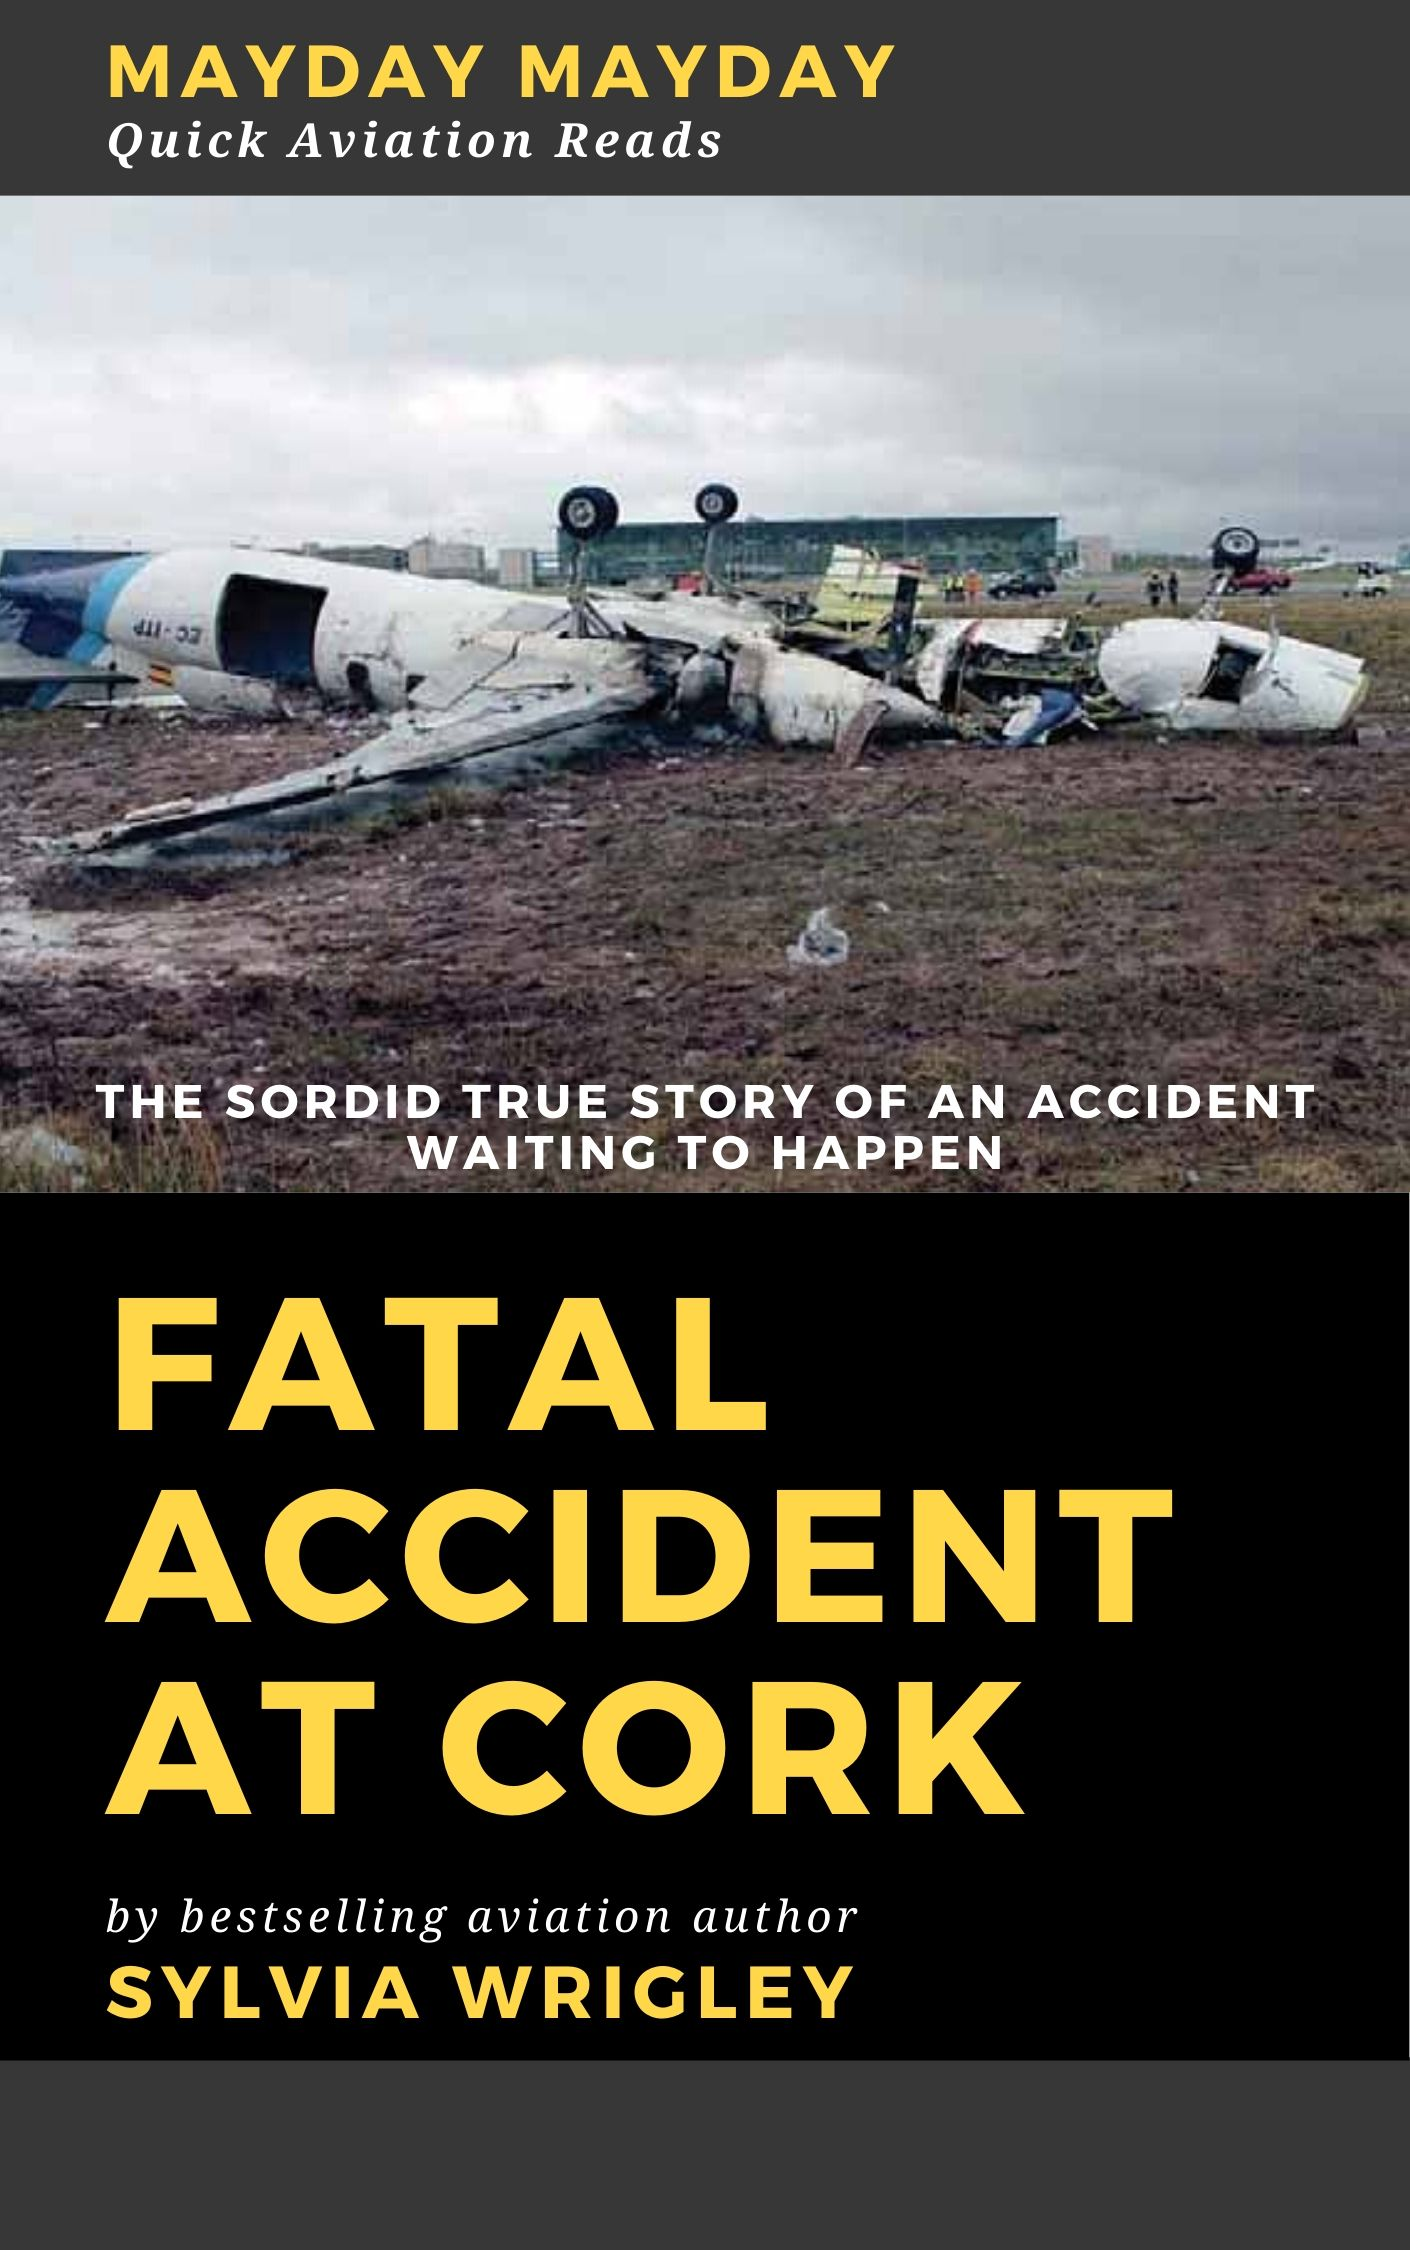 Fatal Accident At Cork: The Sordid True Story